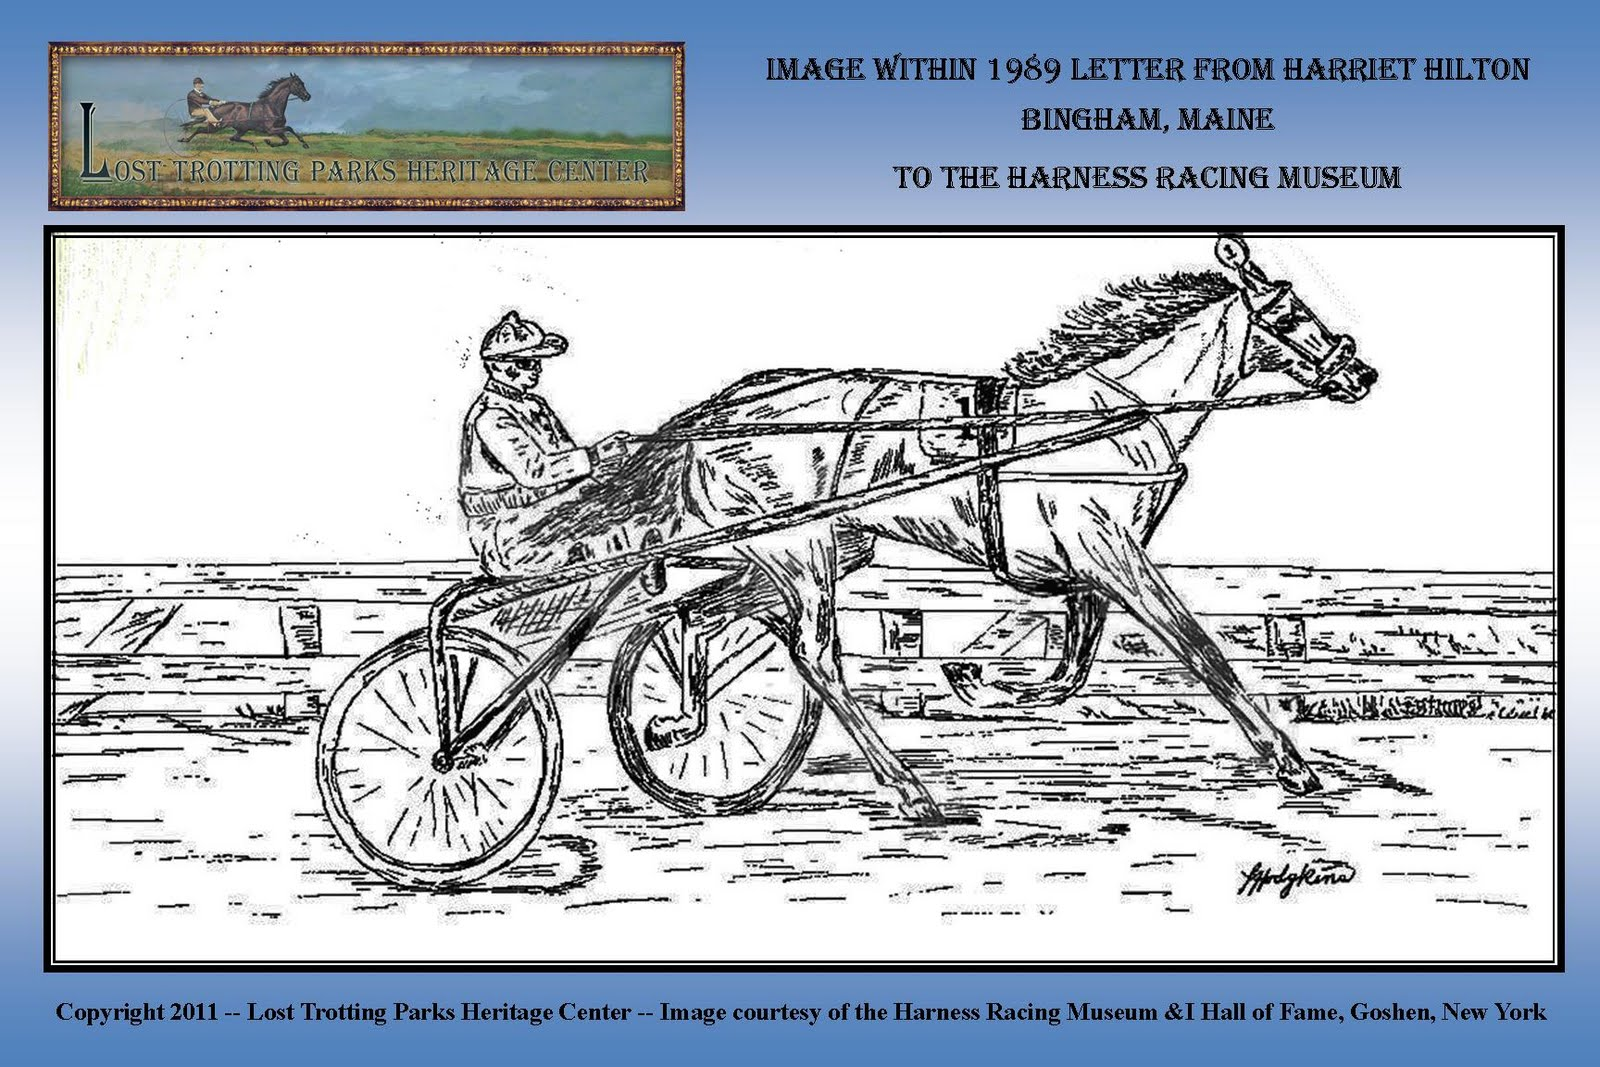 Harriet+Hilton+Bingham+Letters+Storyboards+web1 the lost trotting parks heritage center storyboard archives